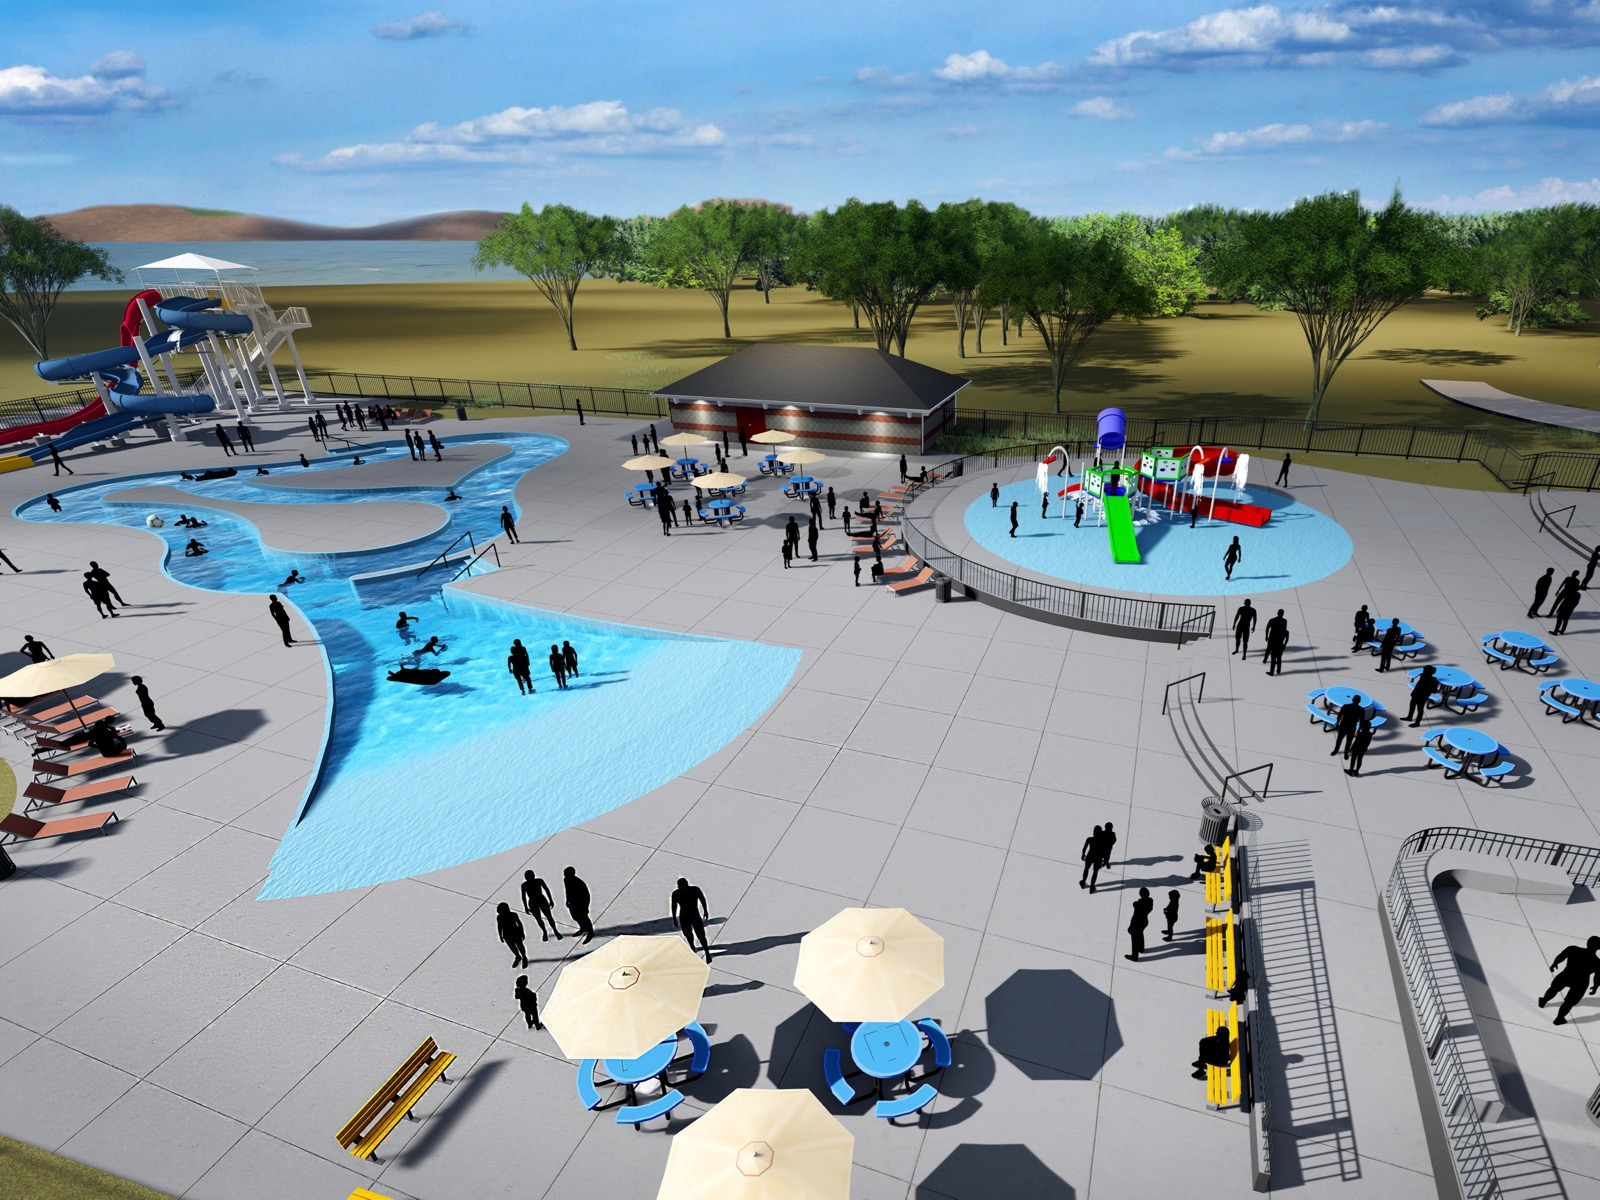 Mandan, Hidatsa and Arikara Nation welcomes visitors to water park